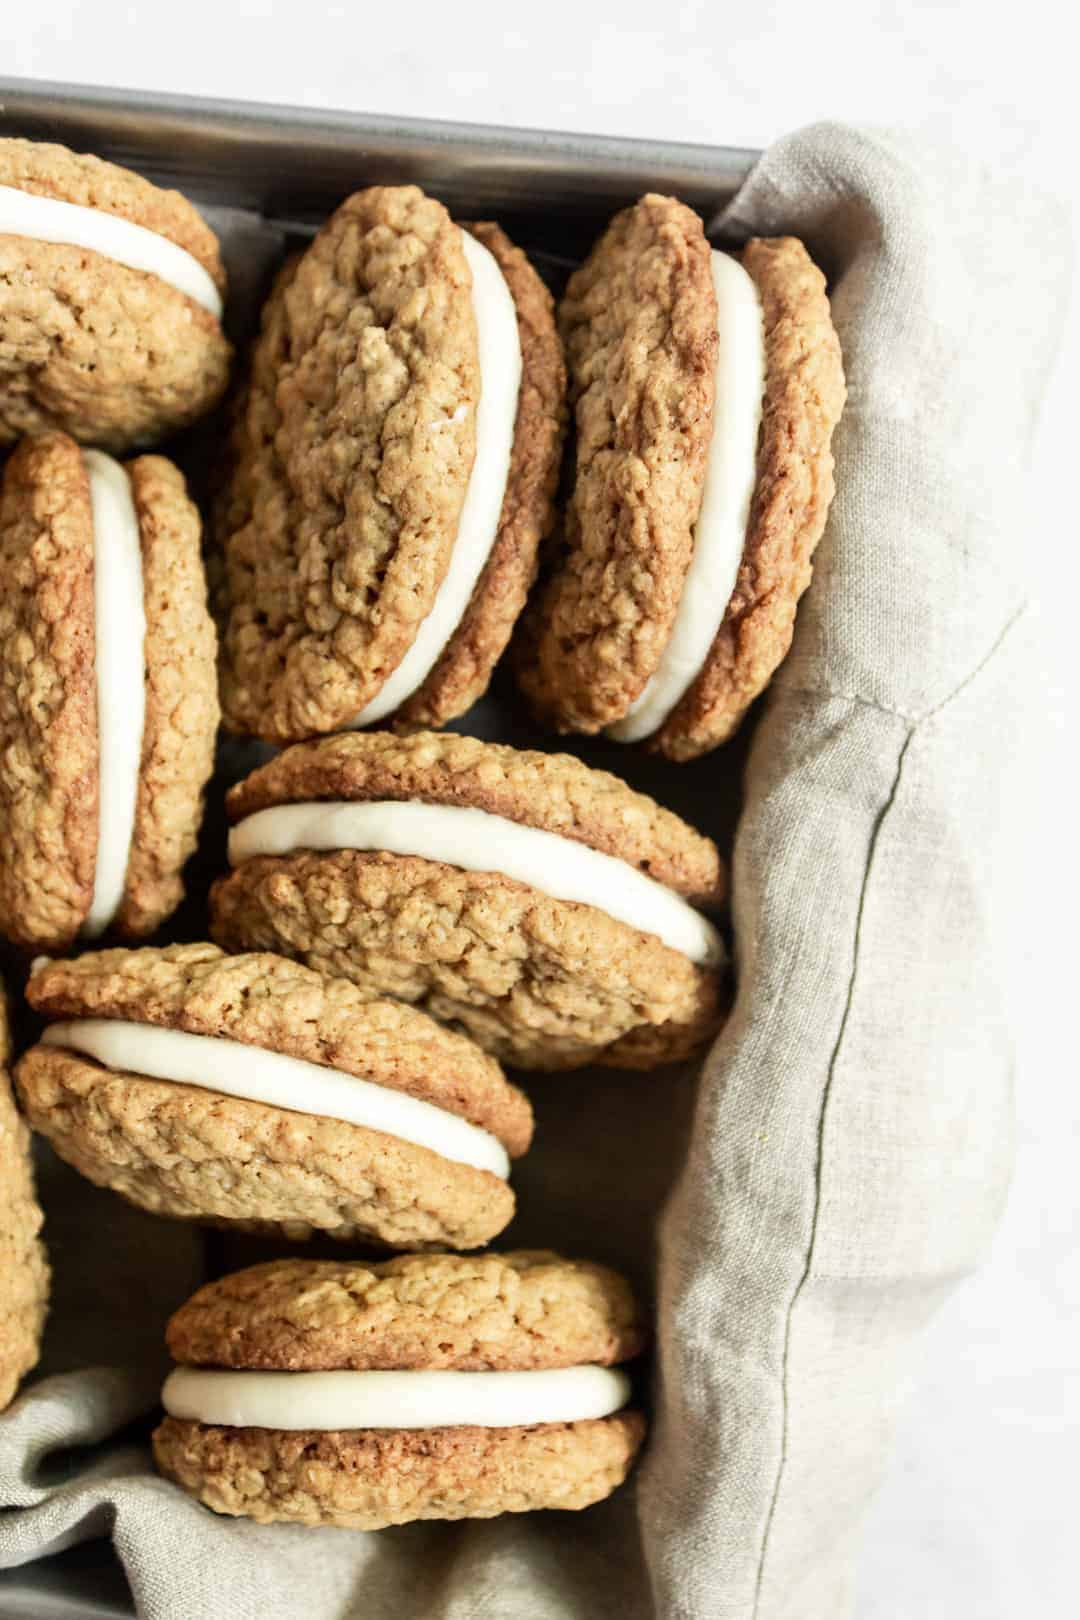 bunch of oatmeal creme pies in a cloth lined baking pan.